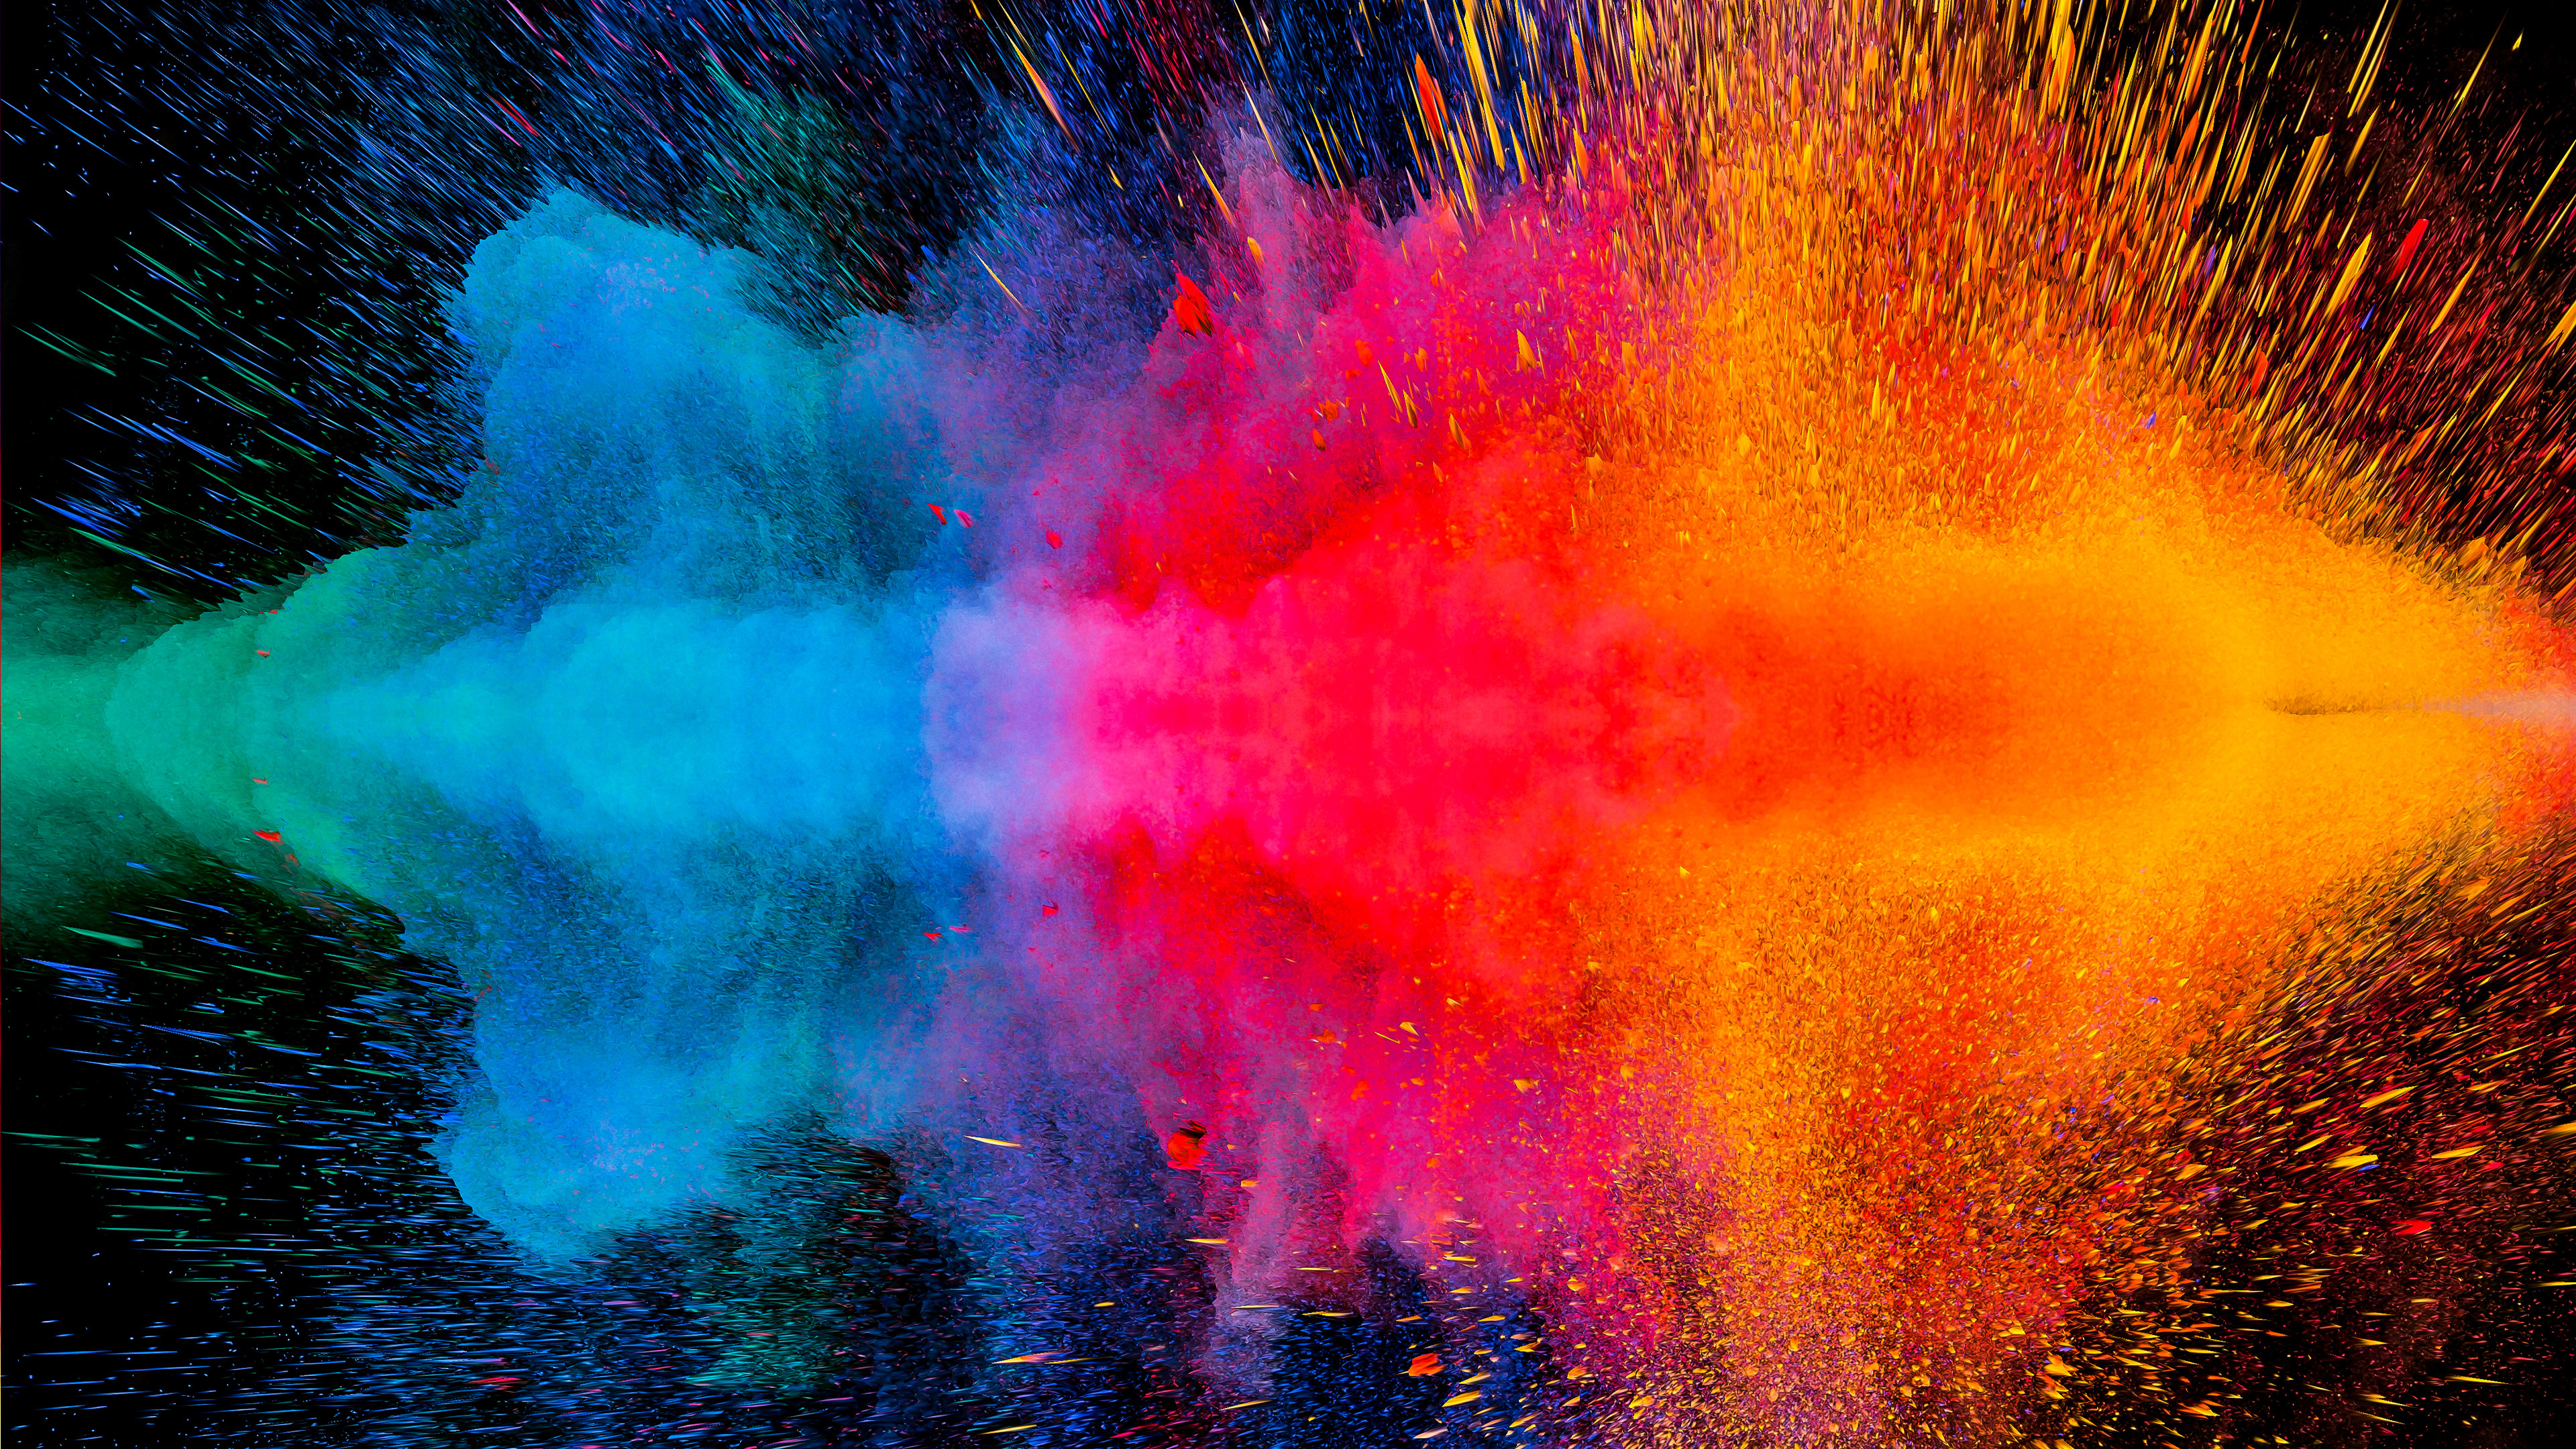 Colorful Dispersion 4k Wallpaper Hd Abstract 4k Wallpapers Images Photos And Background